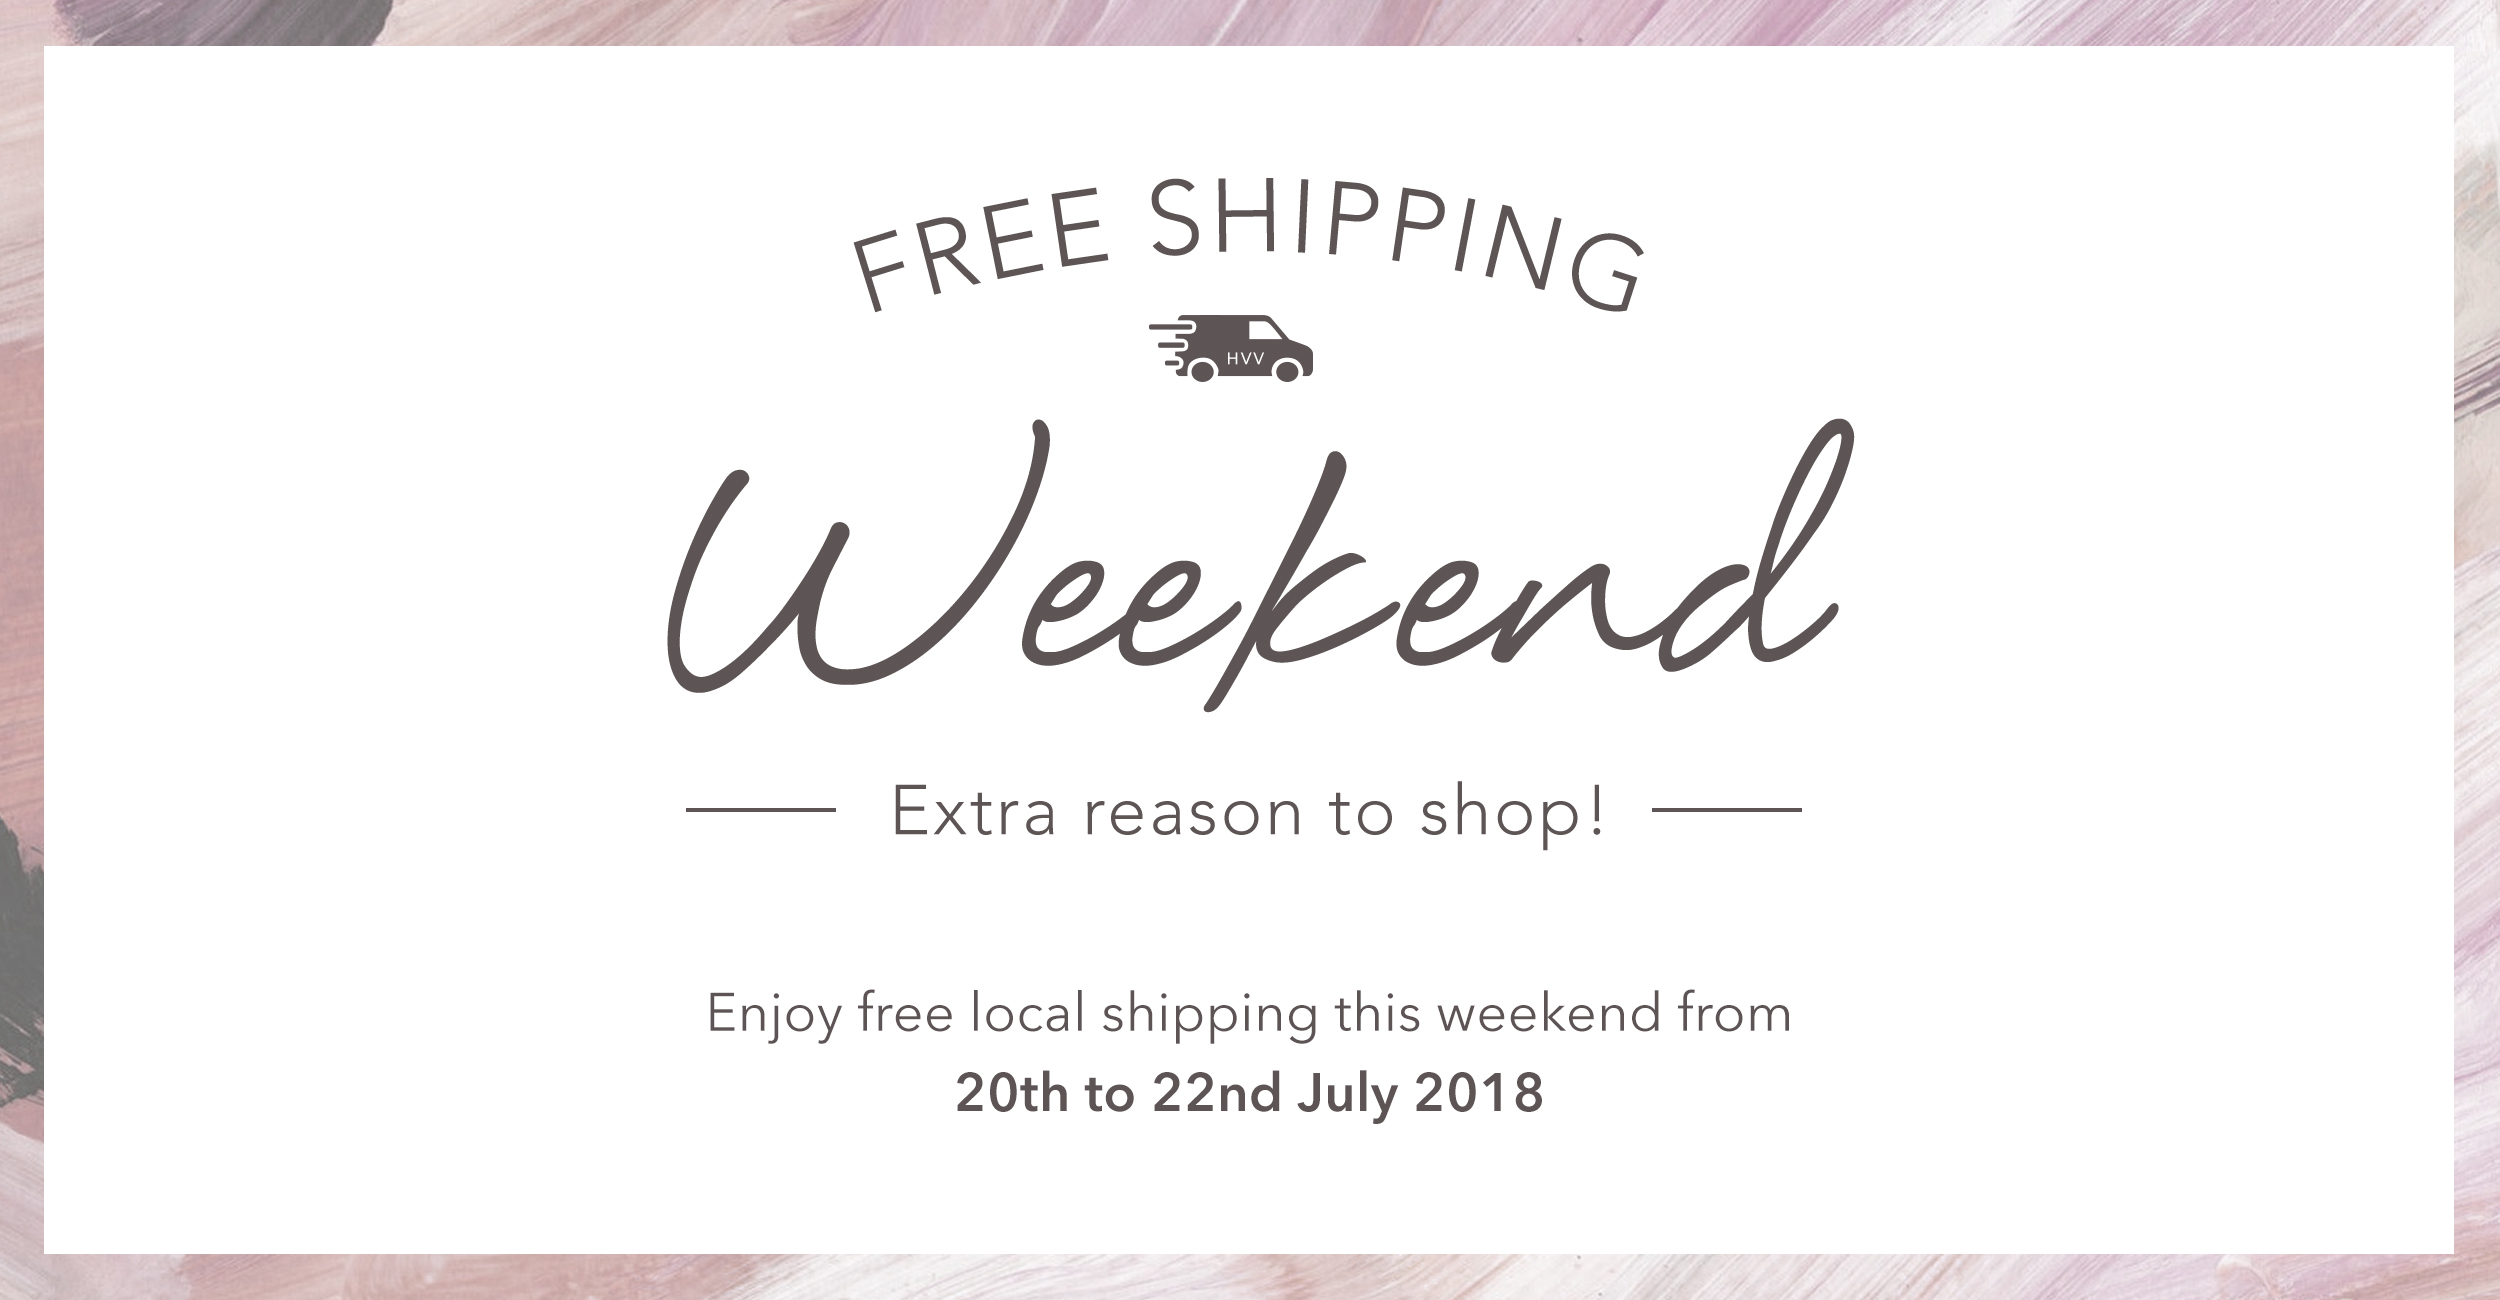 Free Shipping Weekend